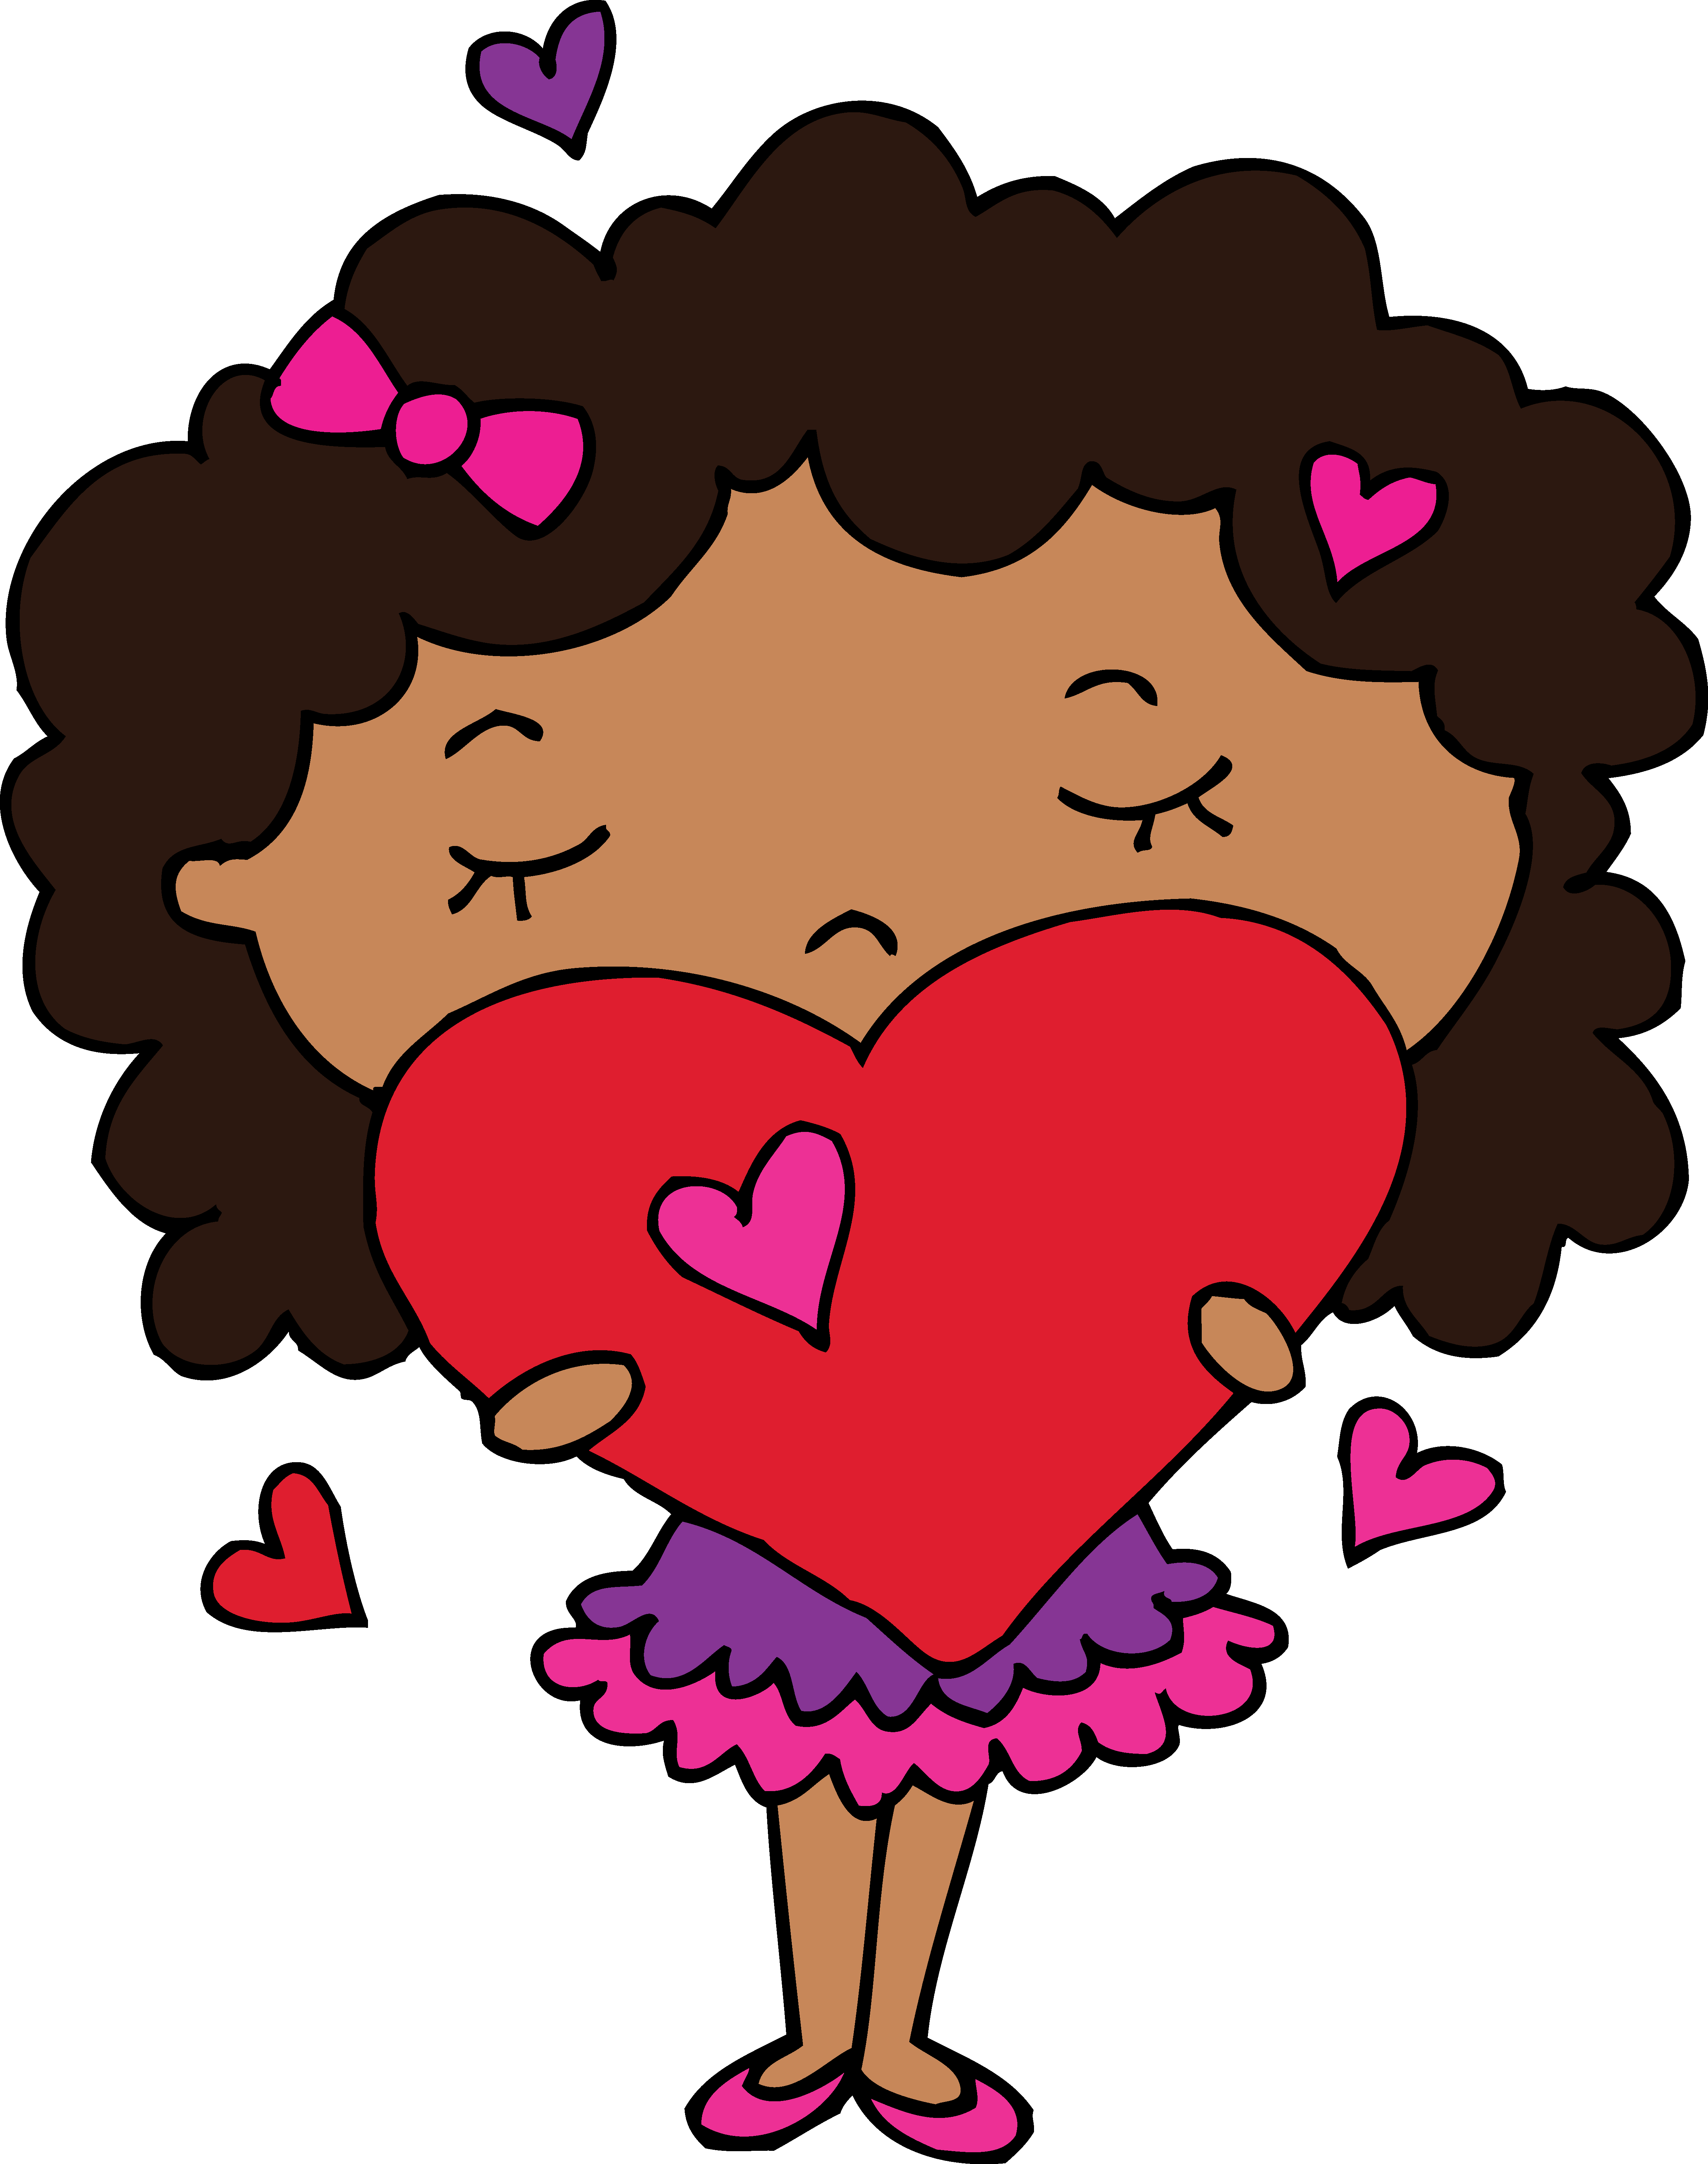 Korean Cute Heart Clipart 20 Free Cliparts Download